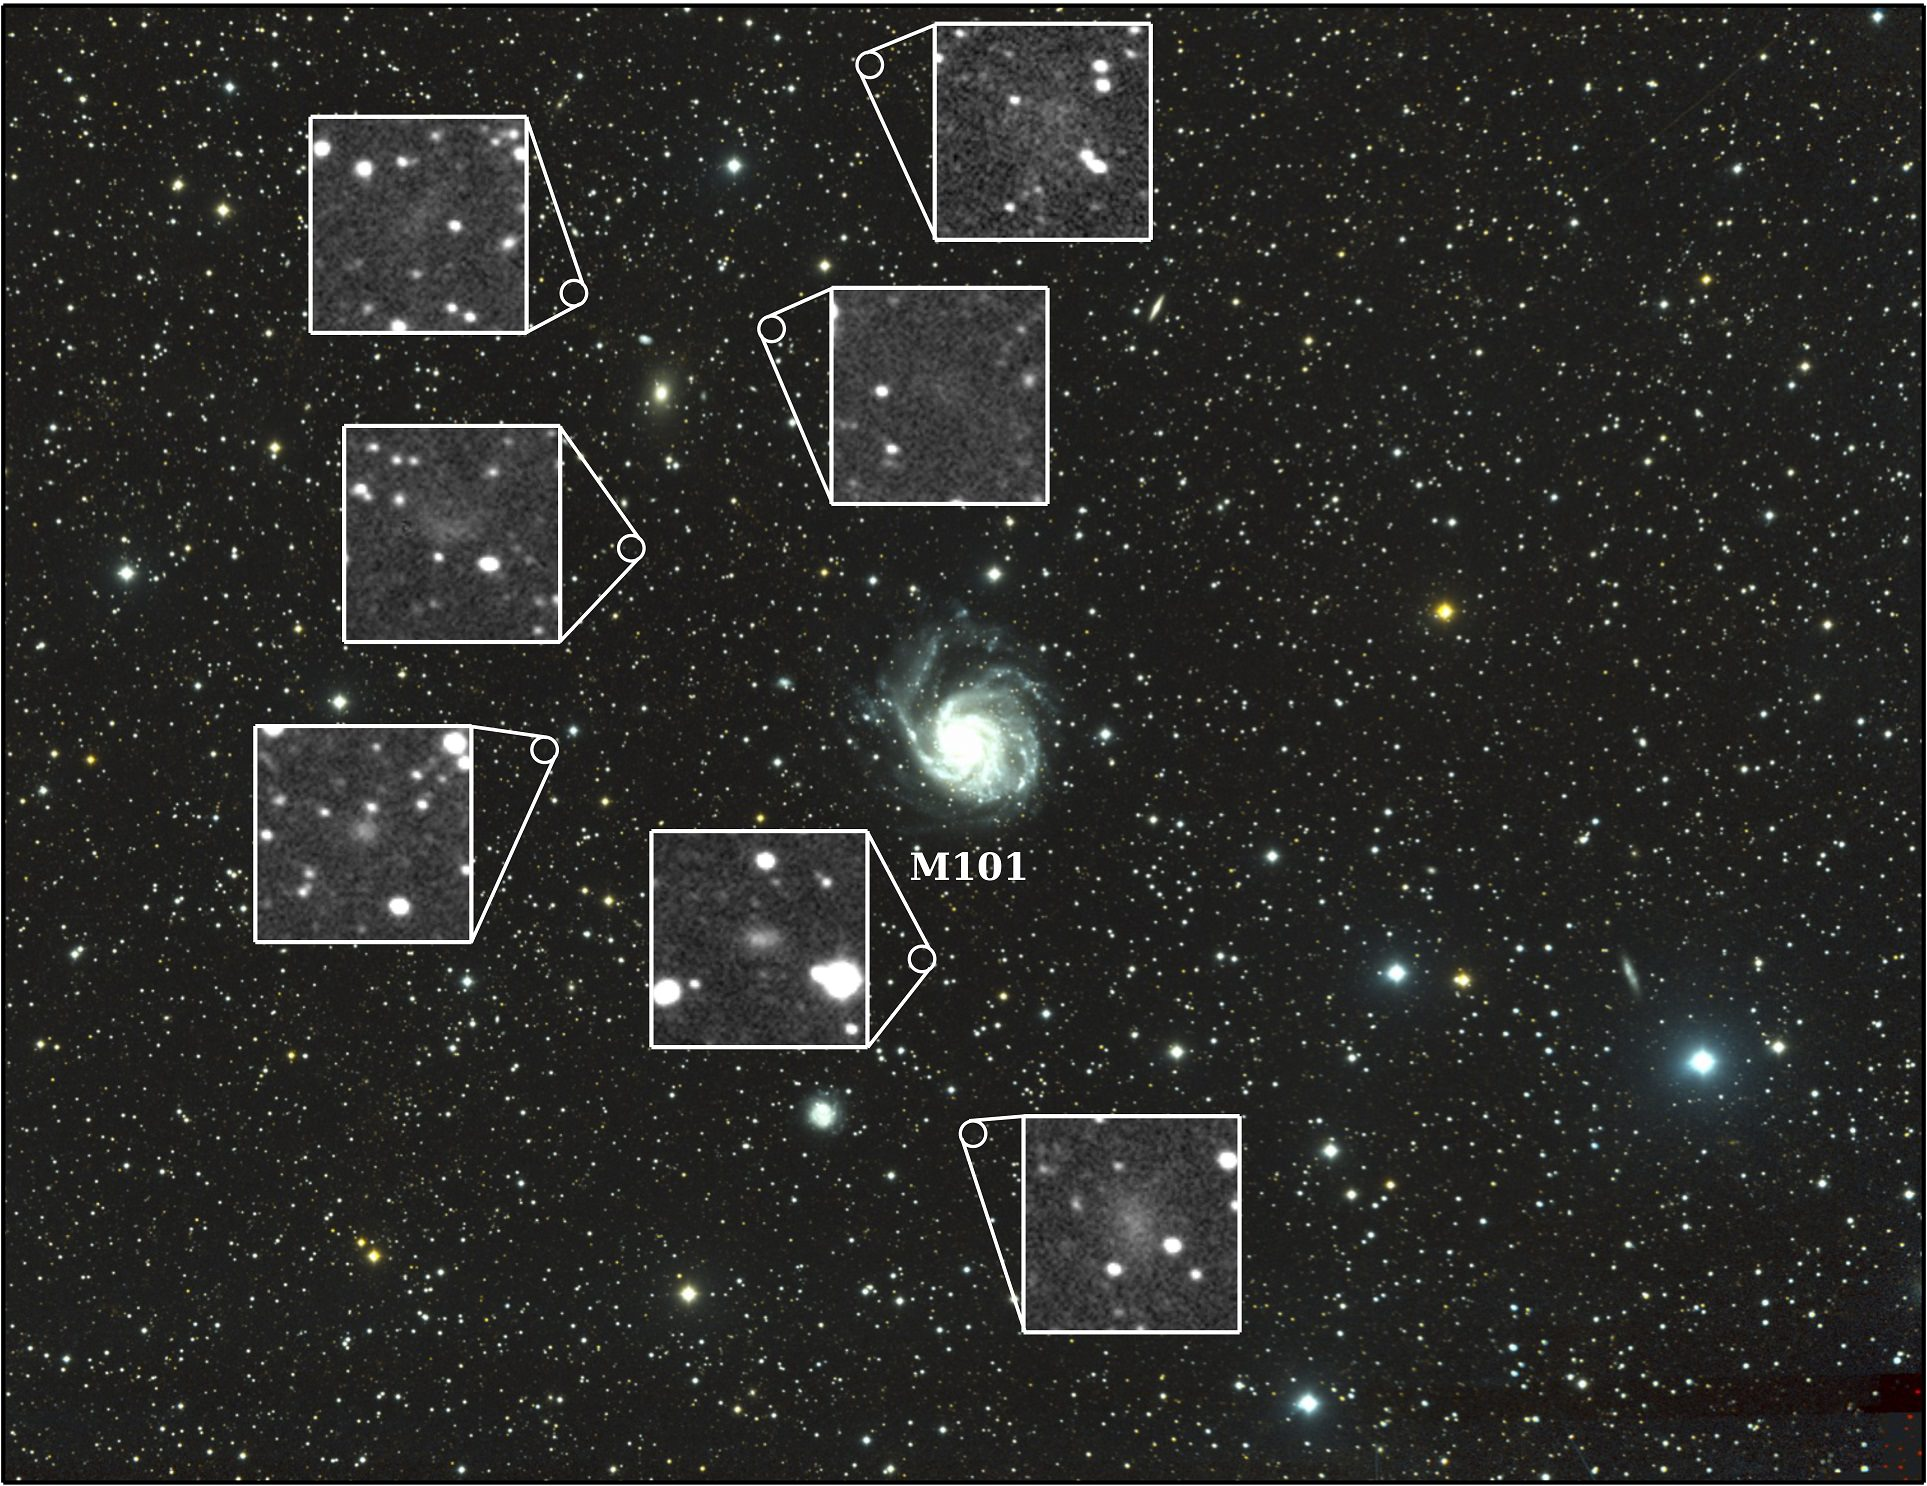 Seven new dwarf galaxies shine in the field of view surrounding M101, the Pinwheel Galaxy. Credit: Yale University